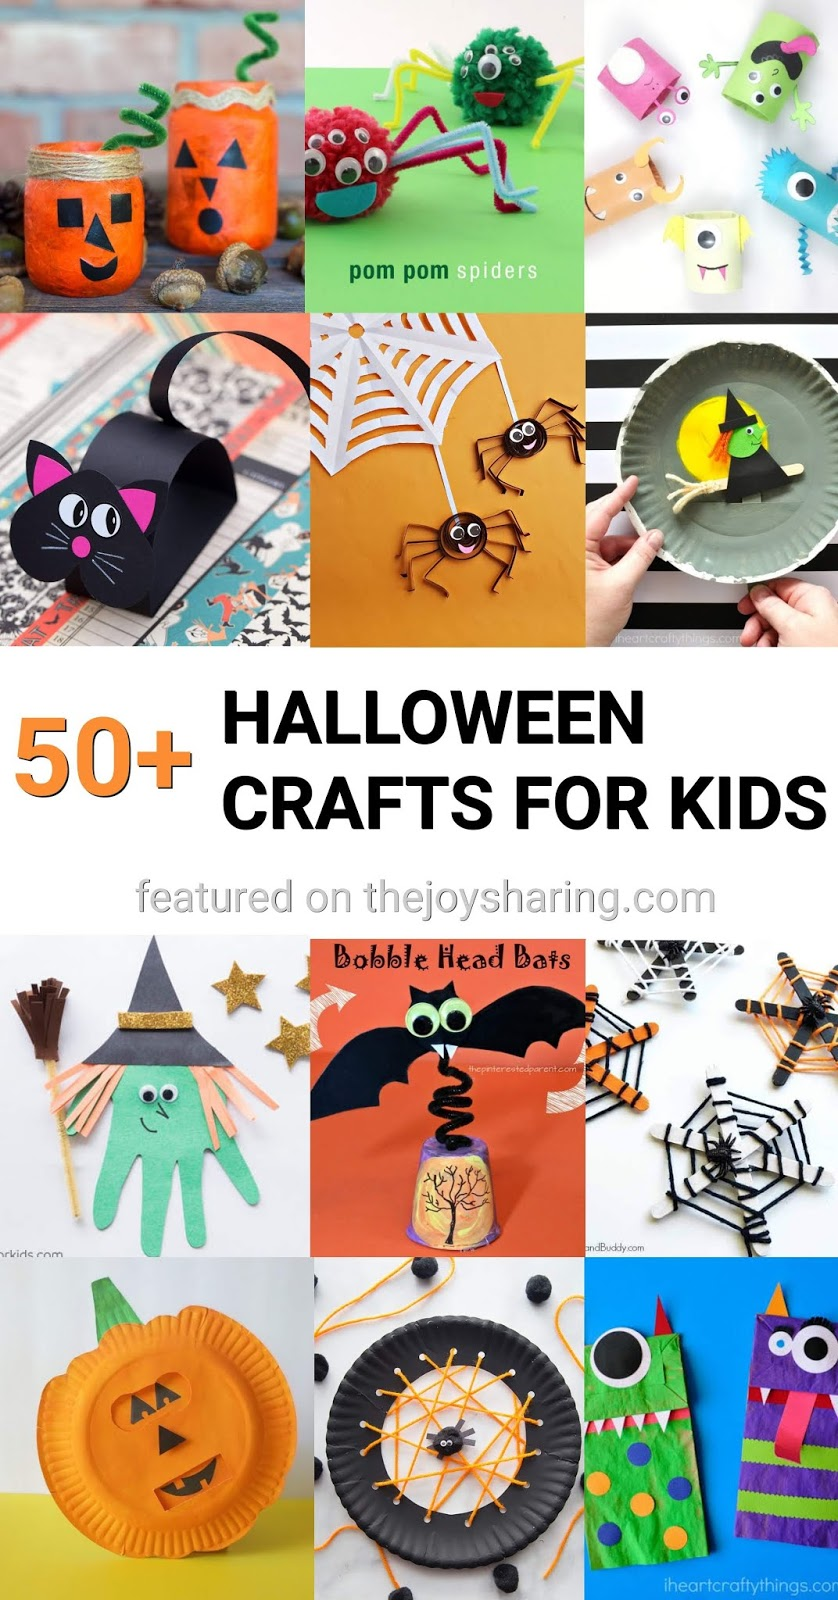 Halloween crafts, Arts and Crafts for Halloween, Halloween crafts for preschoolers, halloween crafts for kindergarten, halloween crafts for toddlers, halloween crafts for tweens, simple and easy halloween craft ideas, halloween crafts tutorial, halloween crafts pinterest, halloween crafts 2018